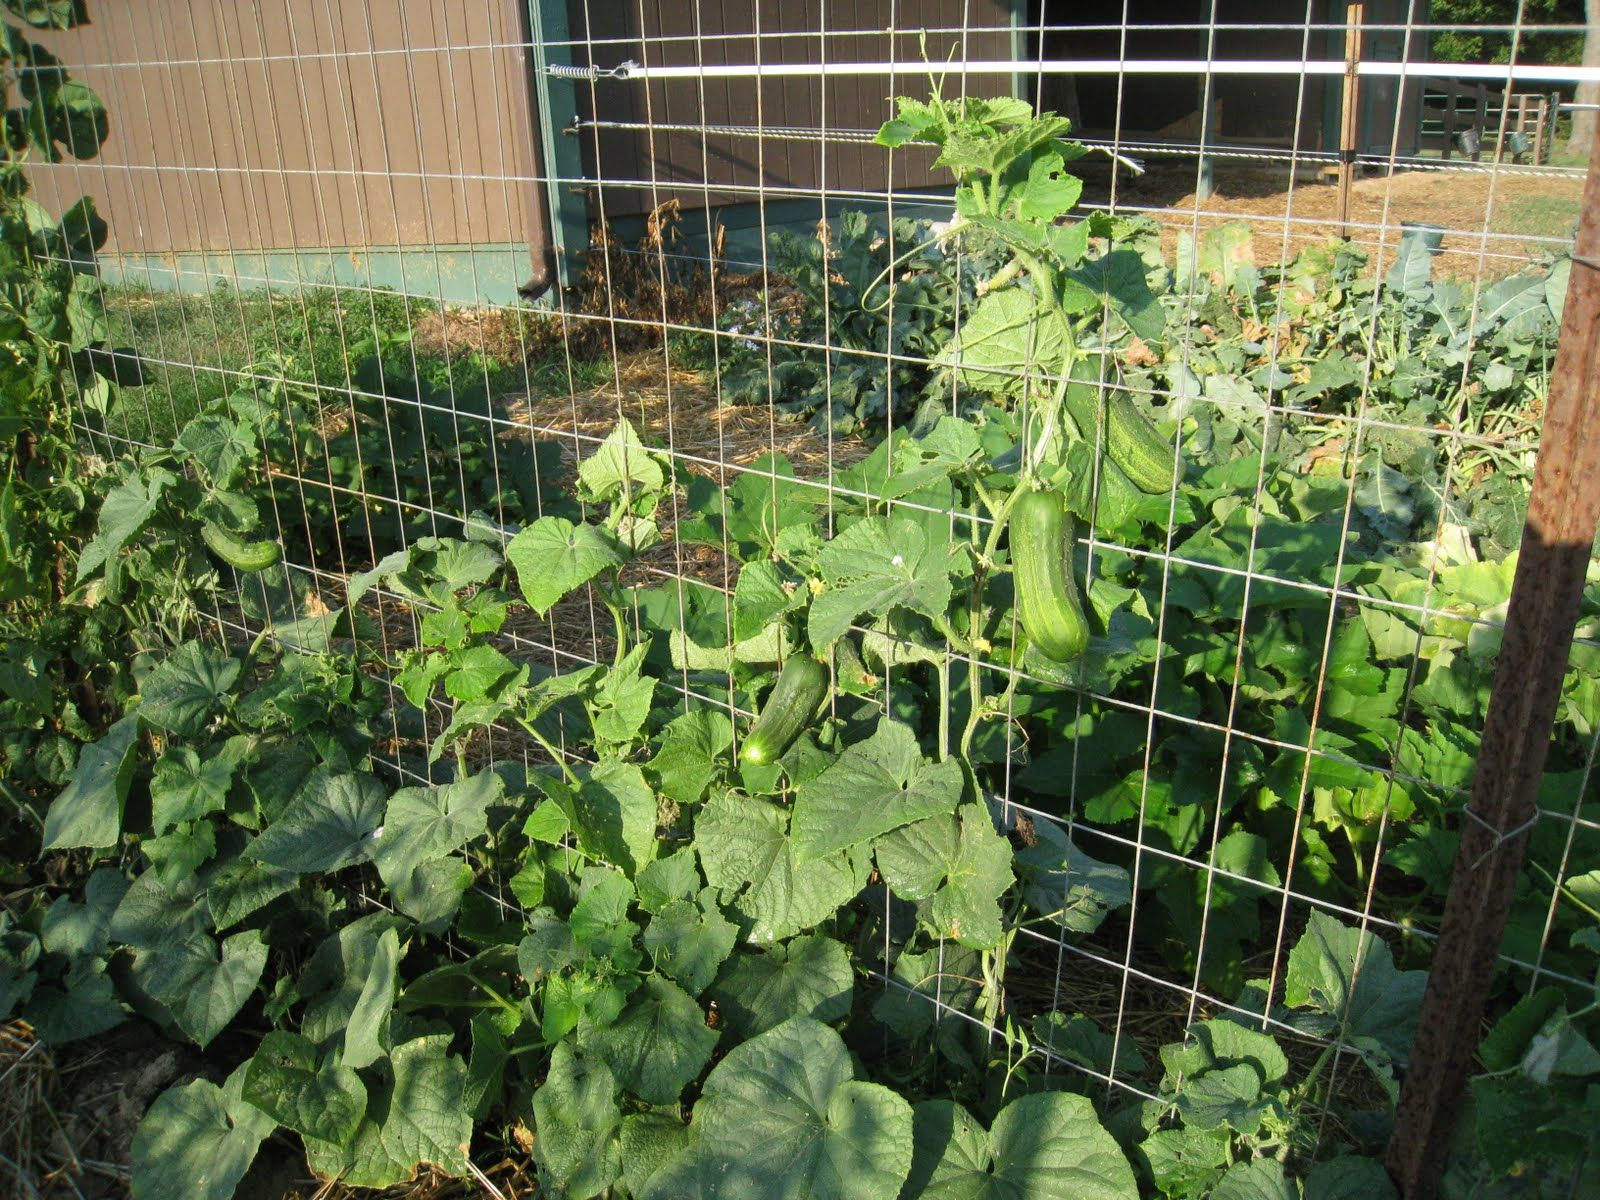 Zucchini Trellis Ideas Part - 28: Trellis Like This Except For Squash (zucchini Plants) Instead Of Cucumbers.  Would Provide Some Cover For More Heat Sensitive Plants.